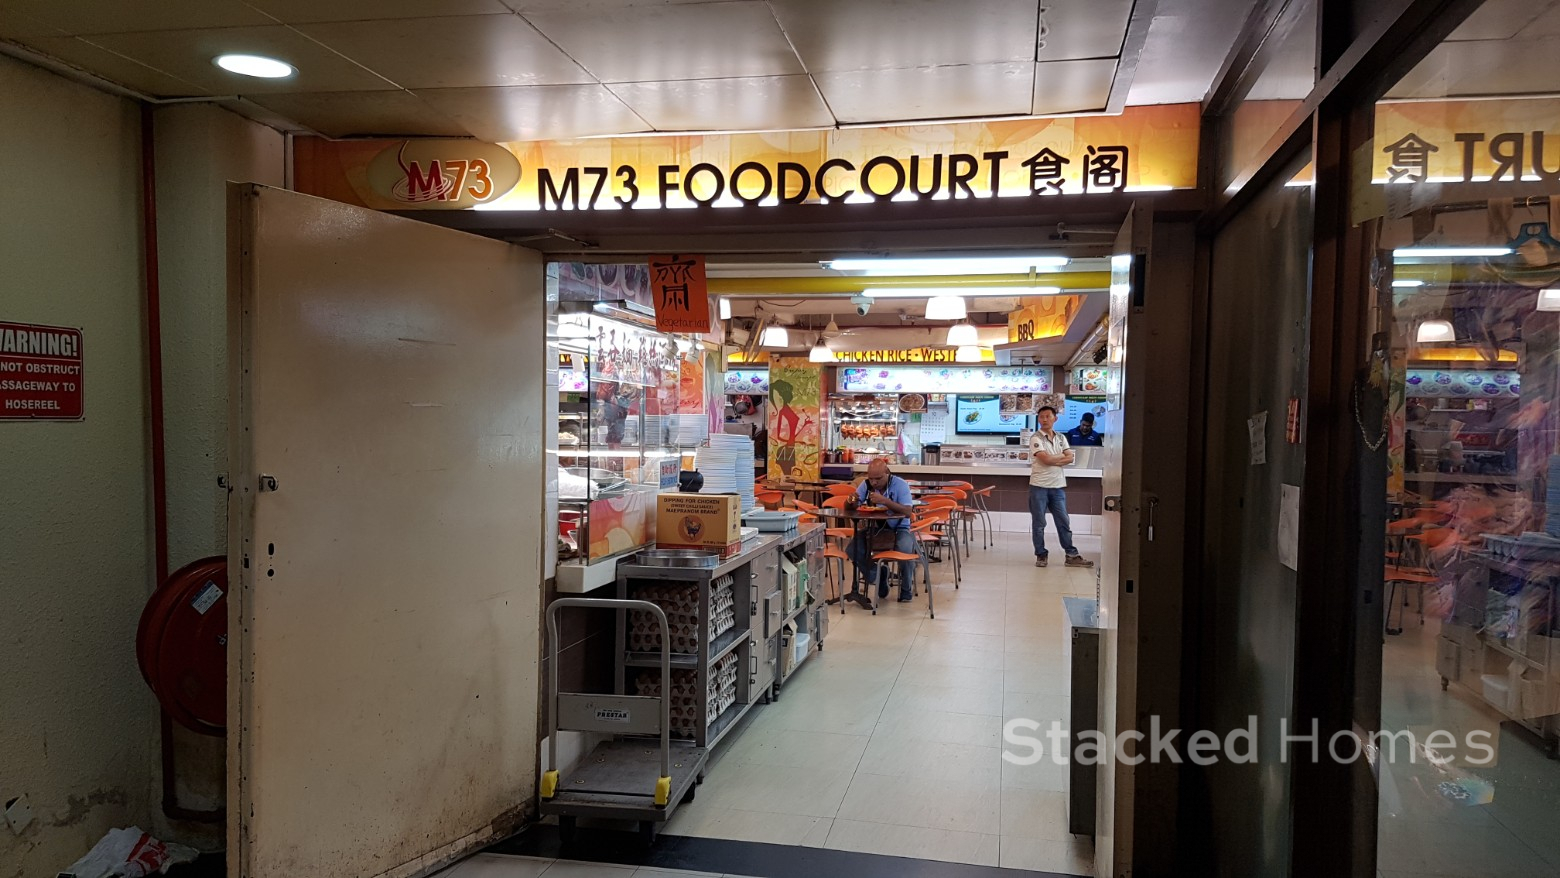 M73 Foodcourt Orchard Towers